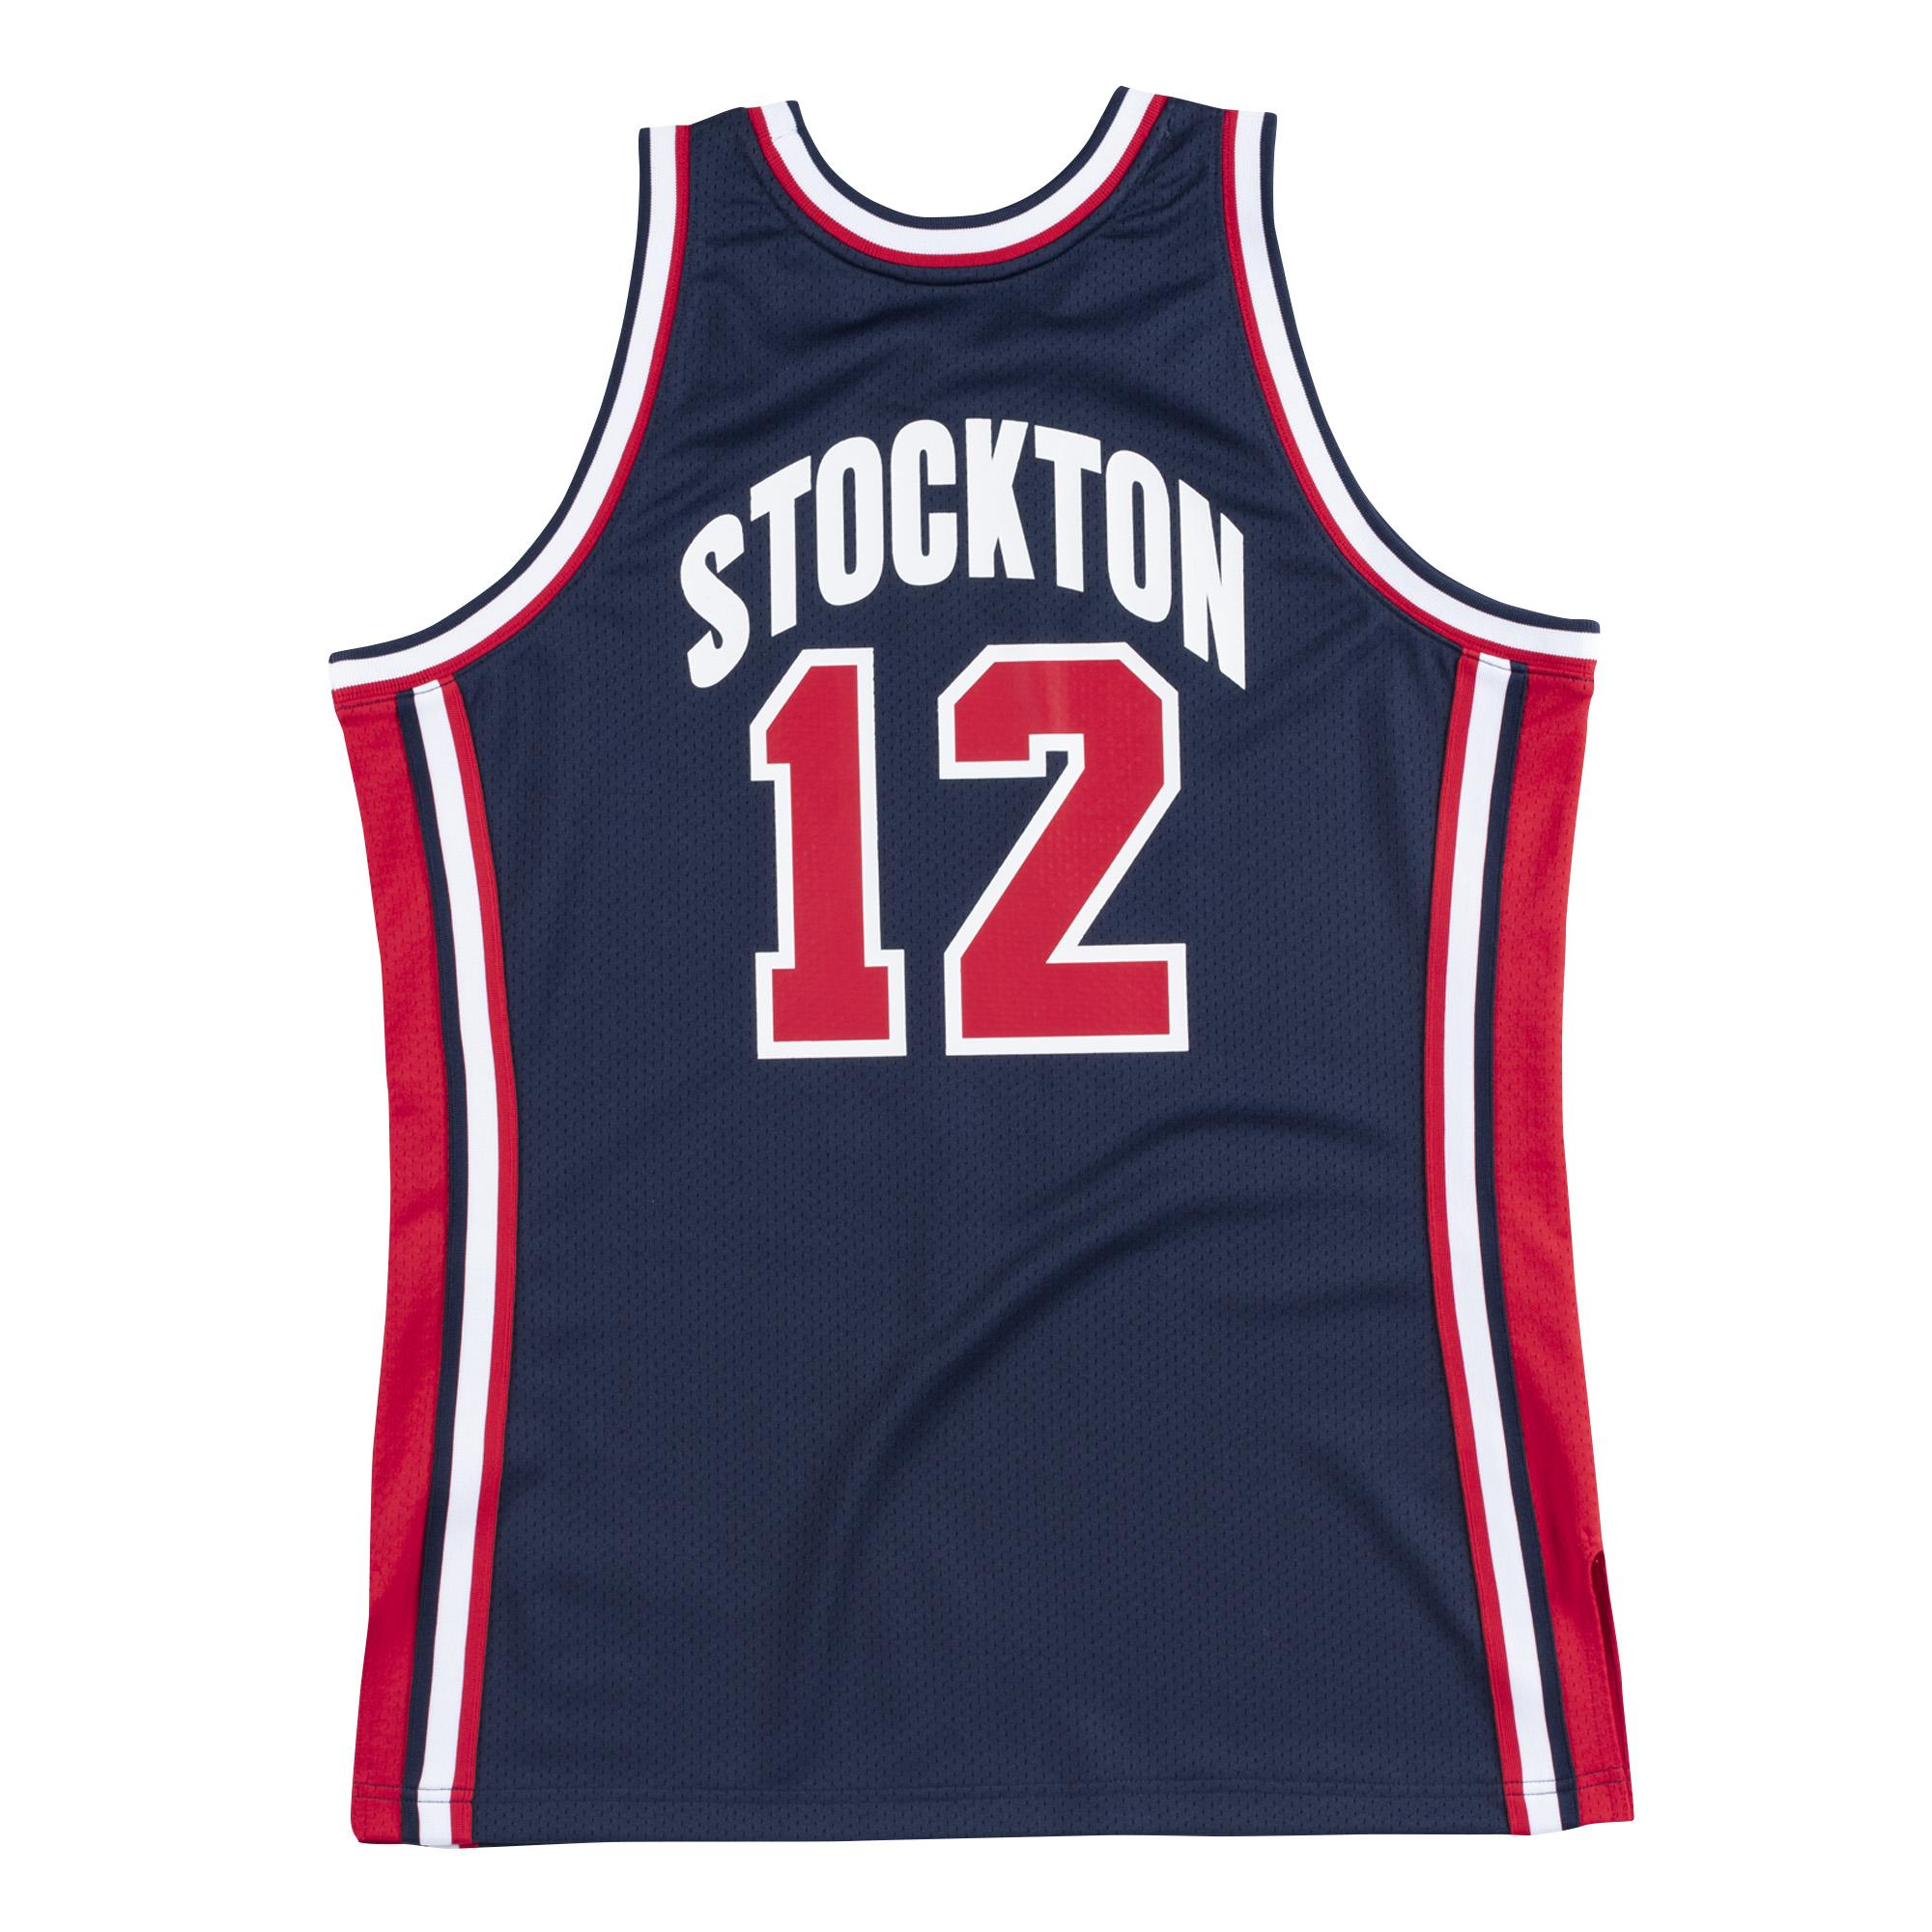 meet 995c8 f2683 Mitchell & Ness | Team USA 1992 Authentic Jersey John Stockton